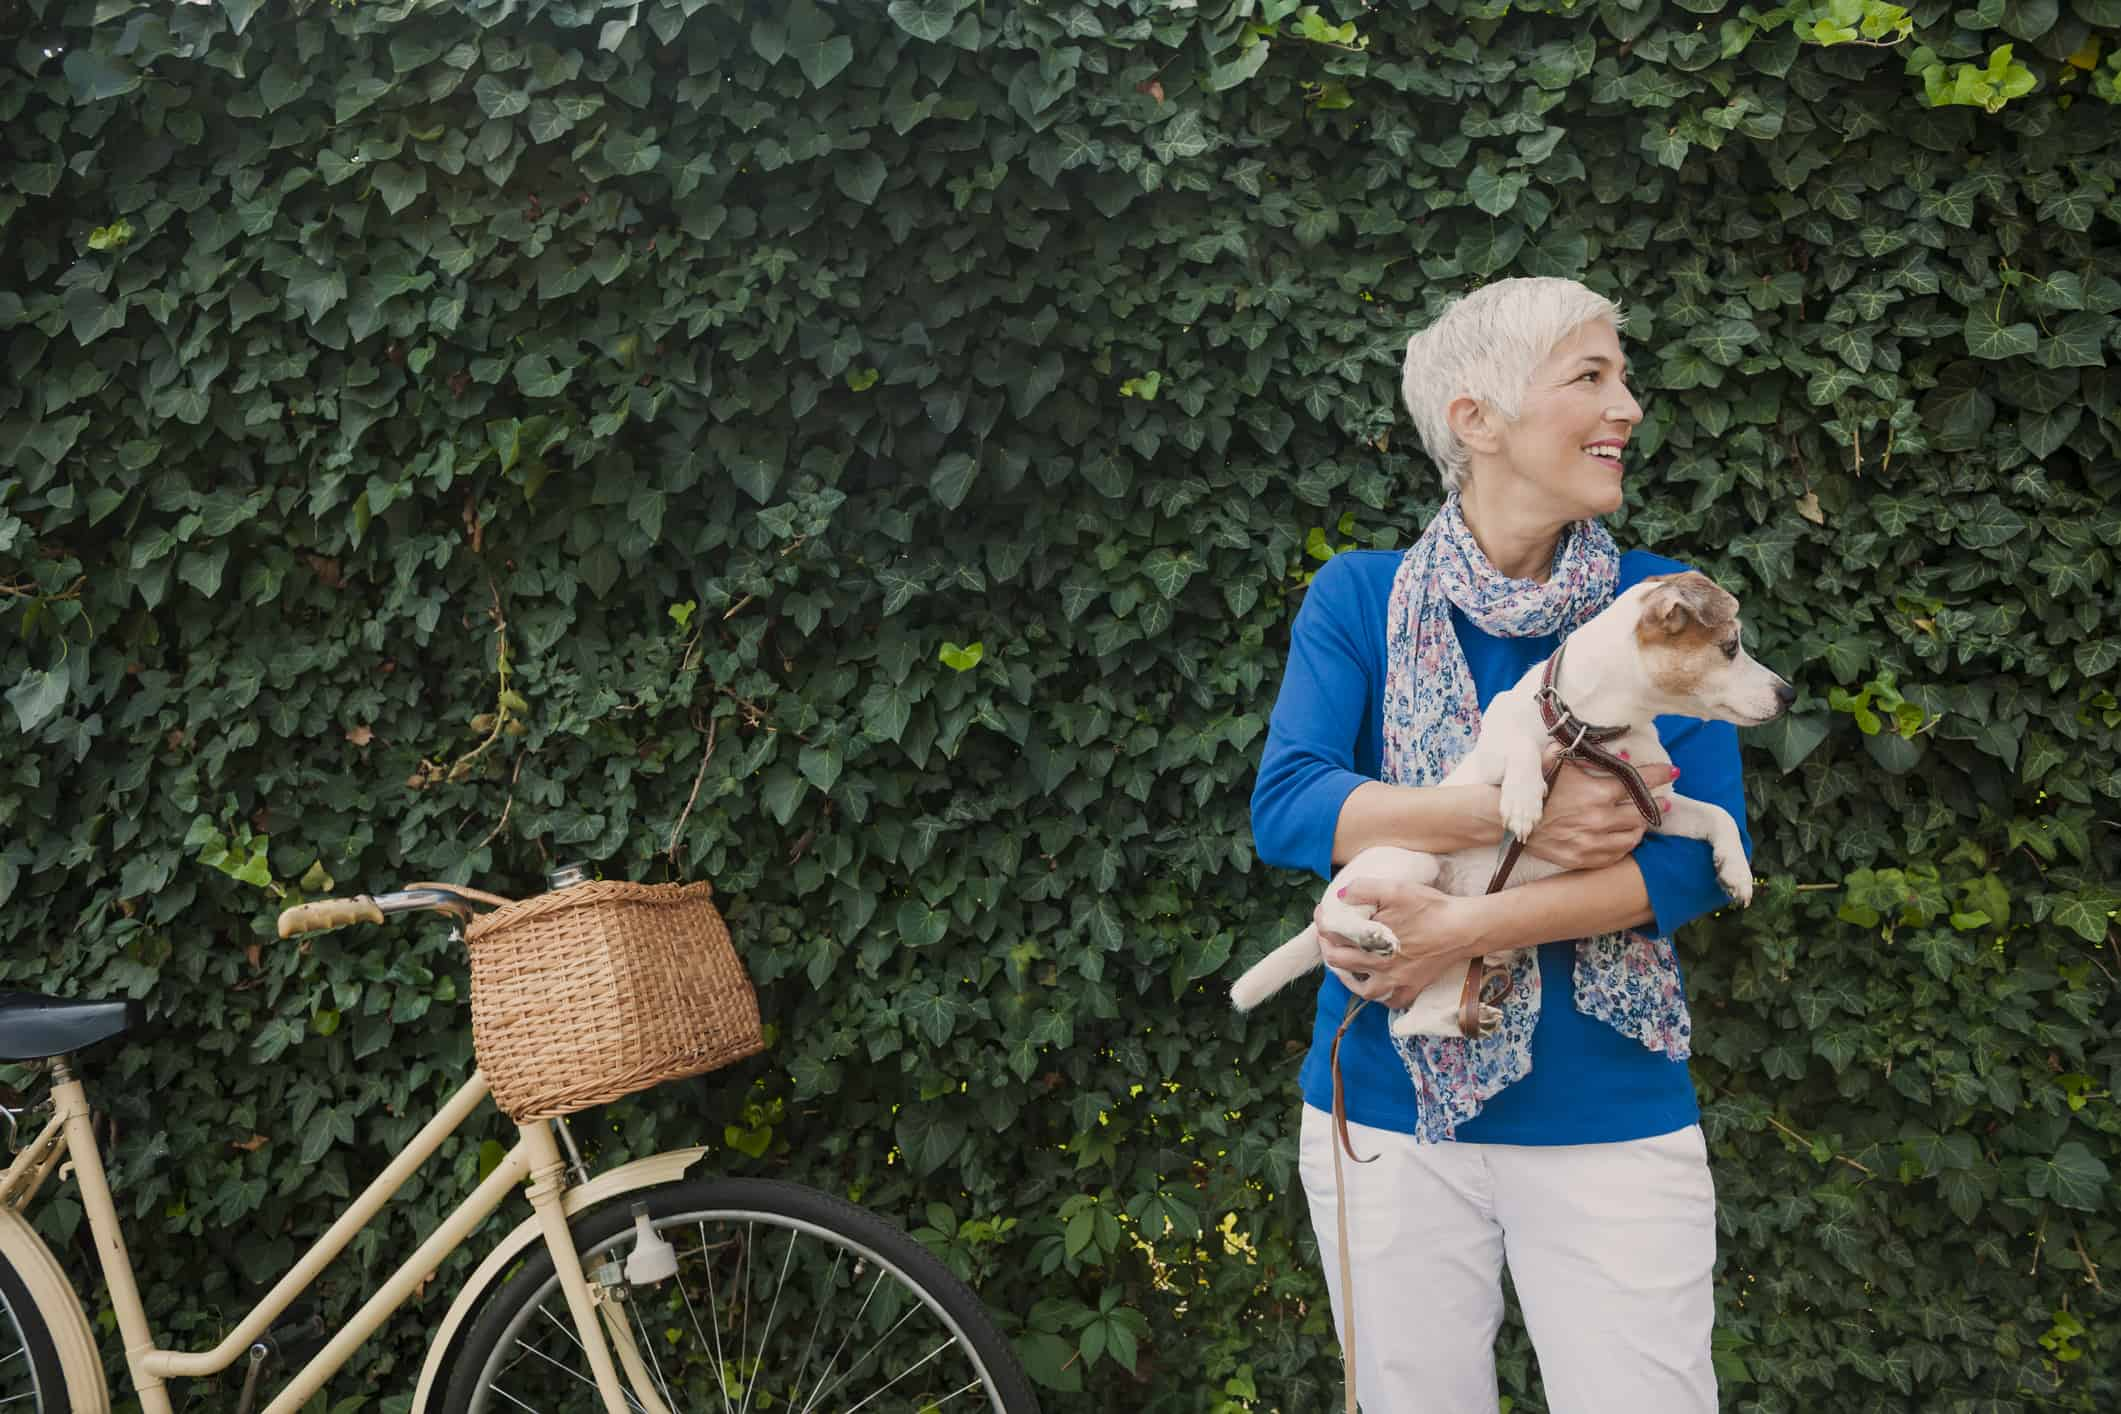 mature woman holding dog, leaves behind them and bicycle